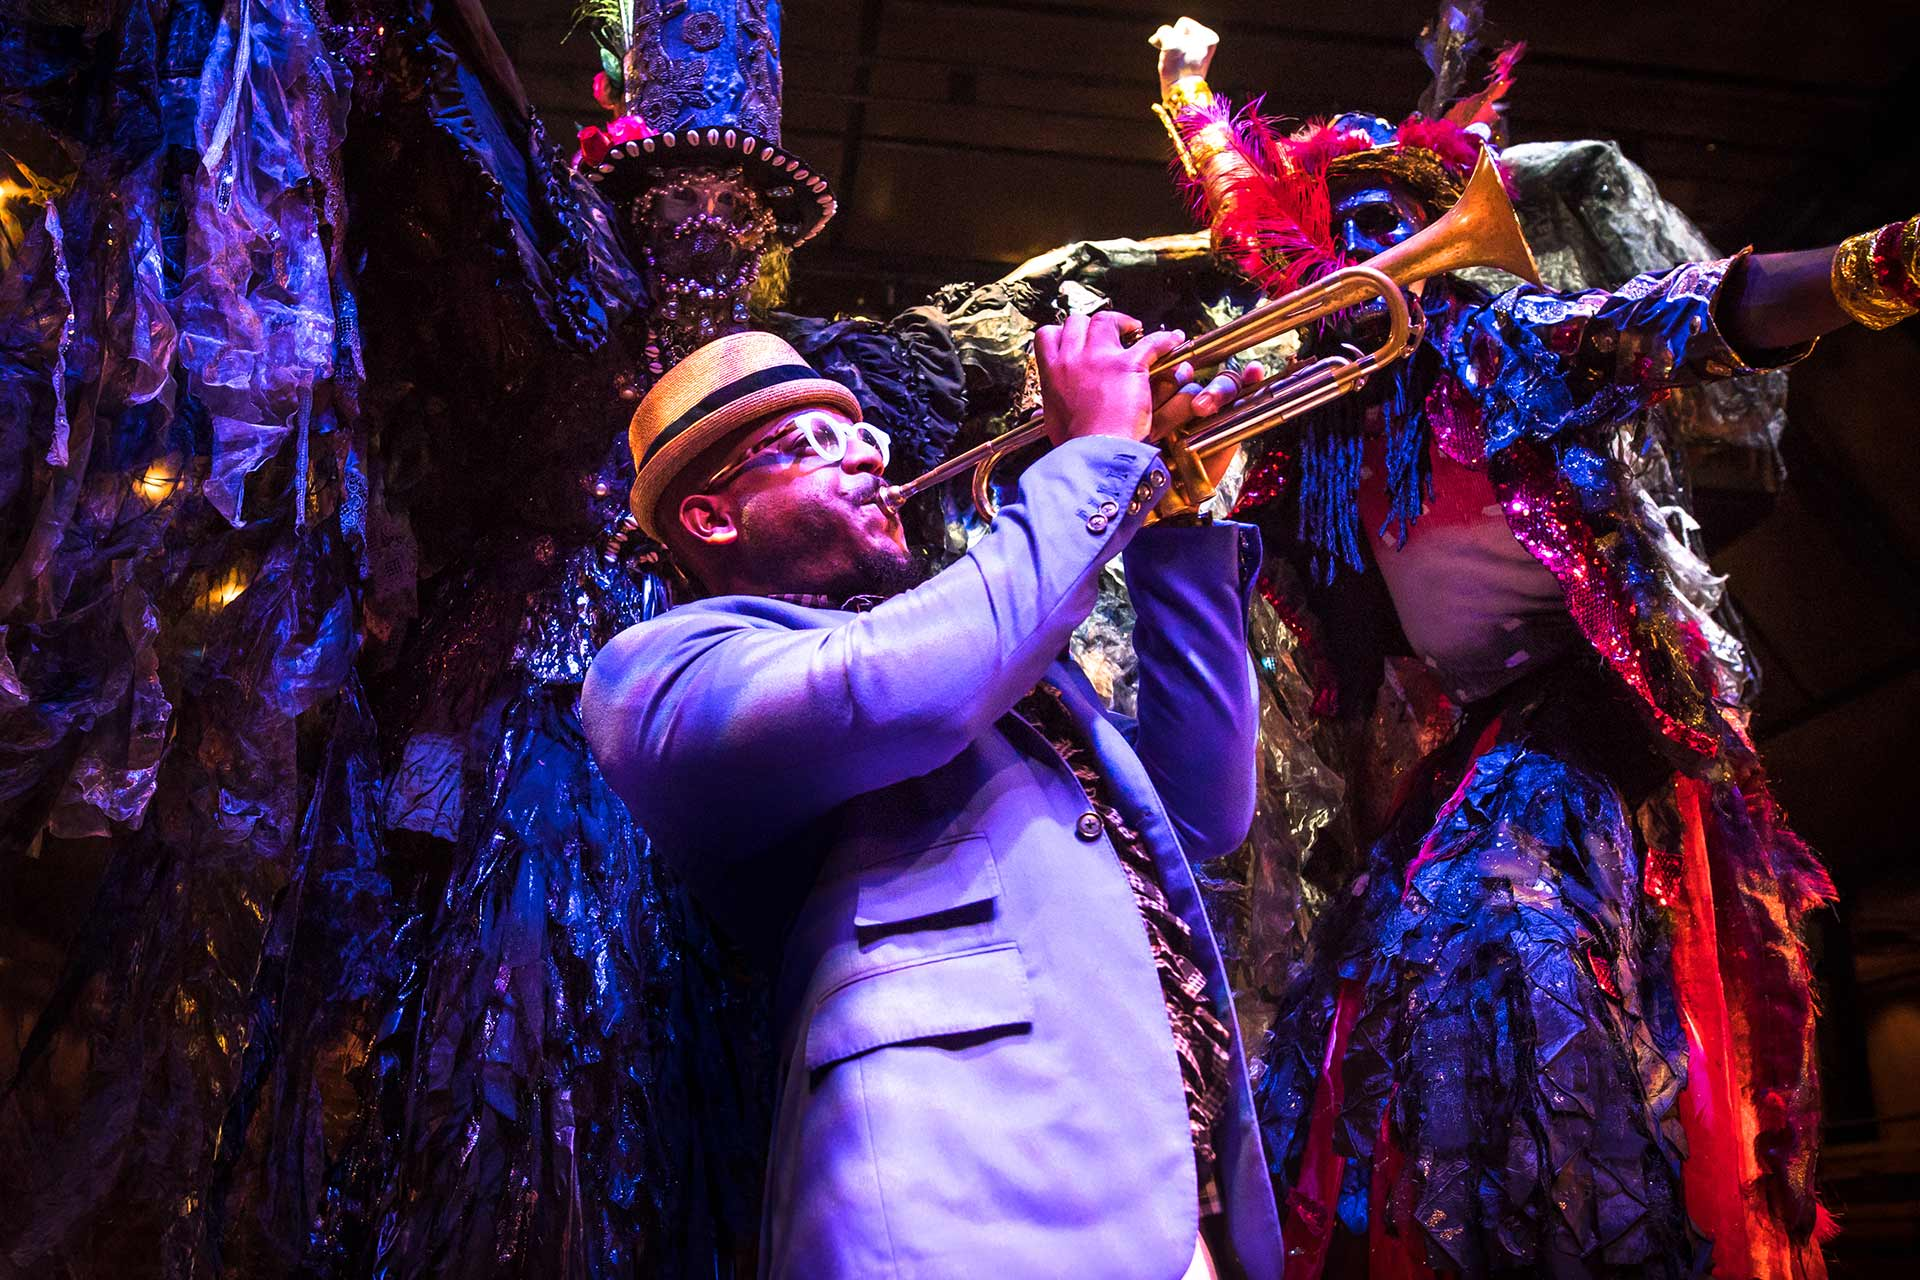 Etienne Charles playing trumpet against a colorful, mardi gras inspired color treatment and performing artists wearing masks and costumes on stilts.